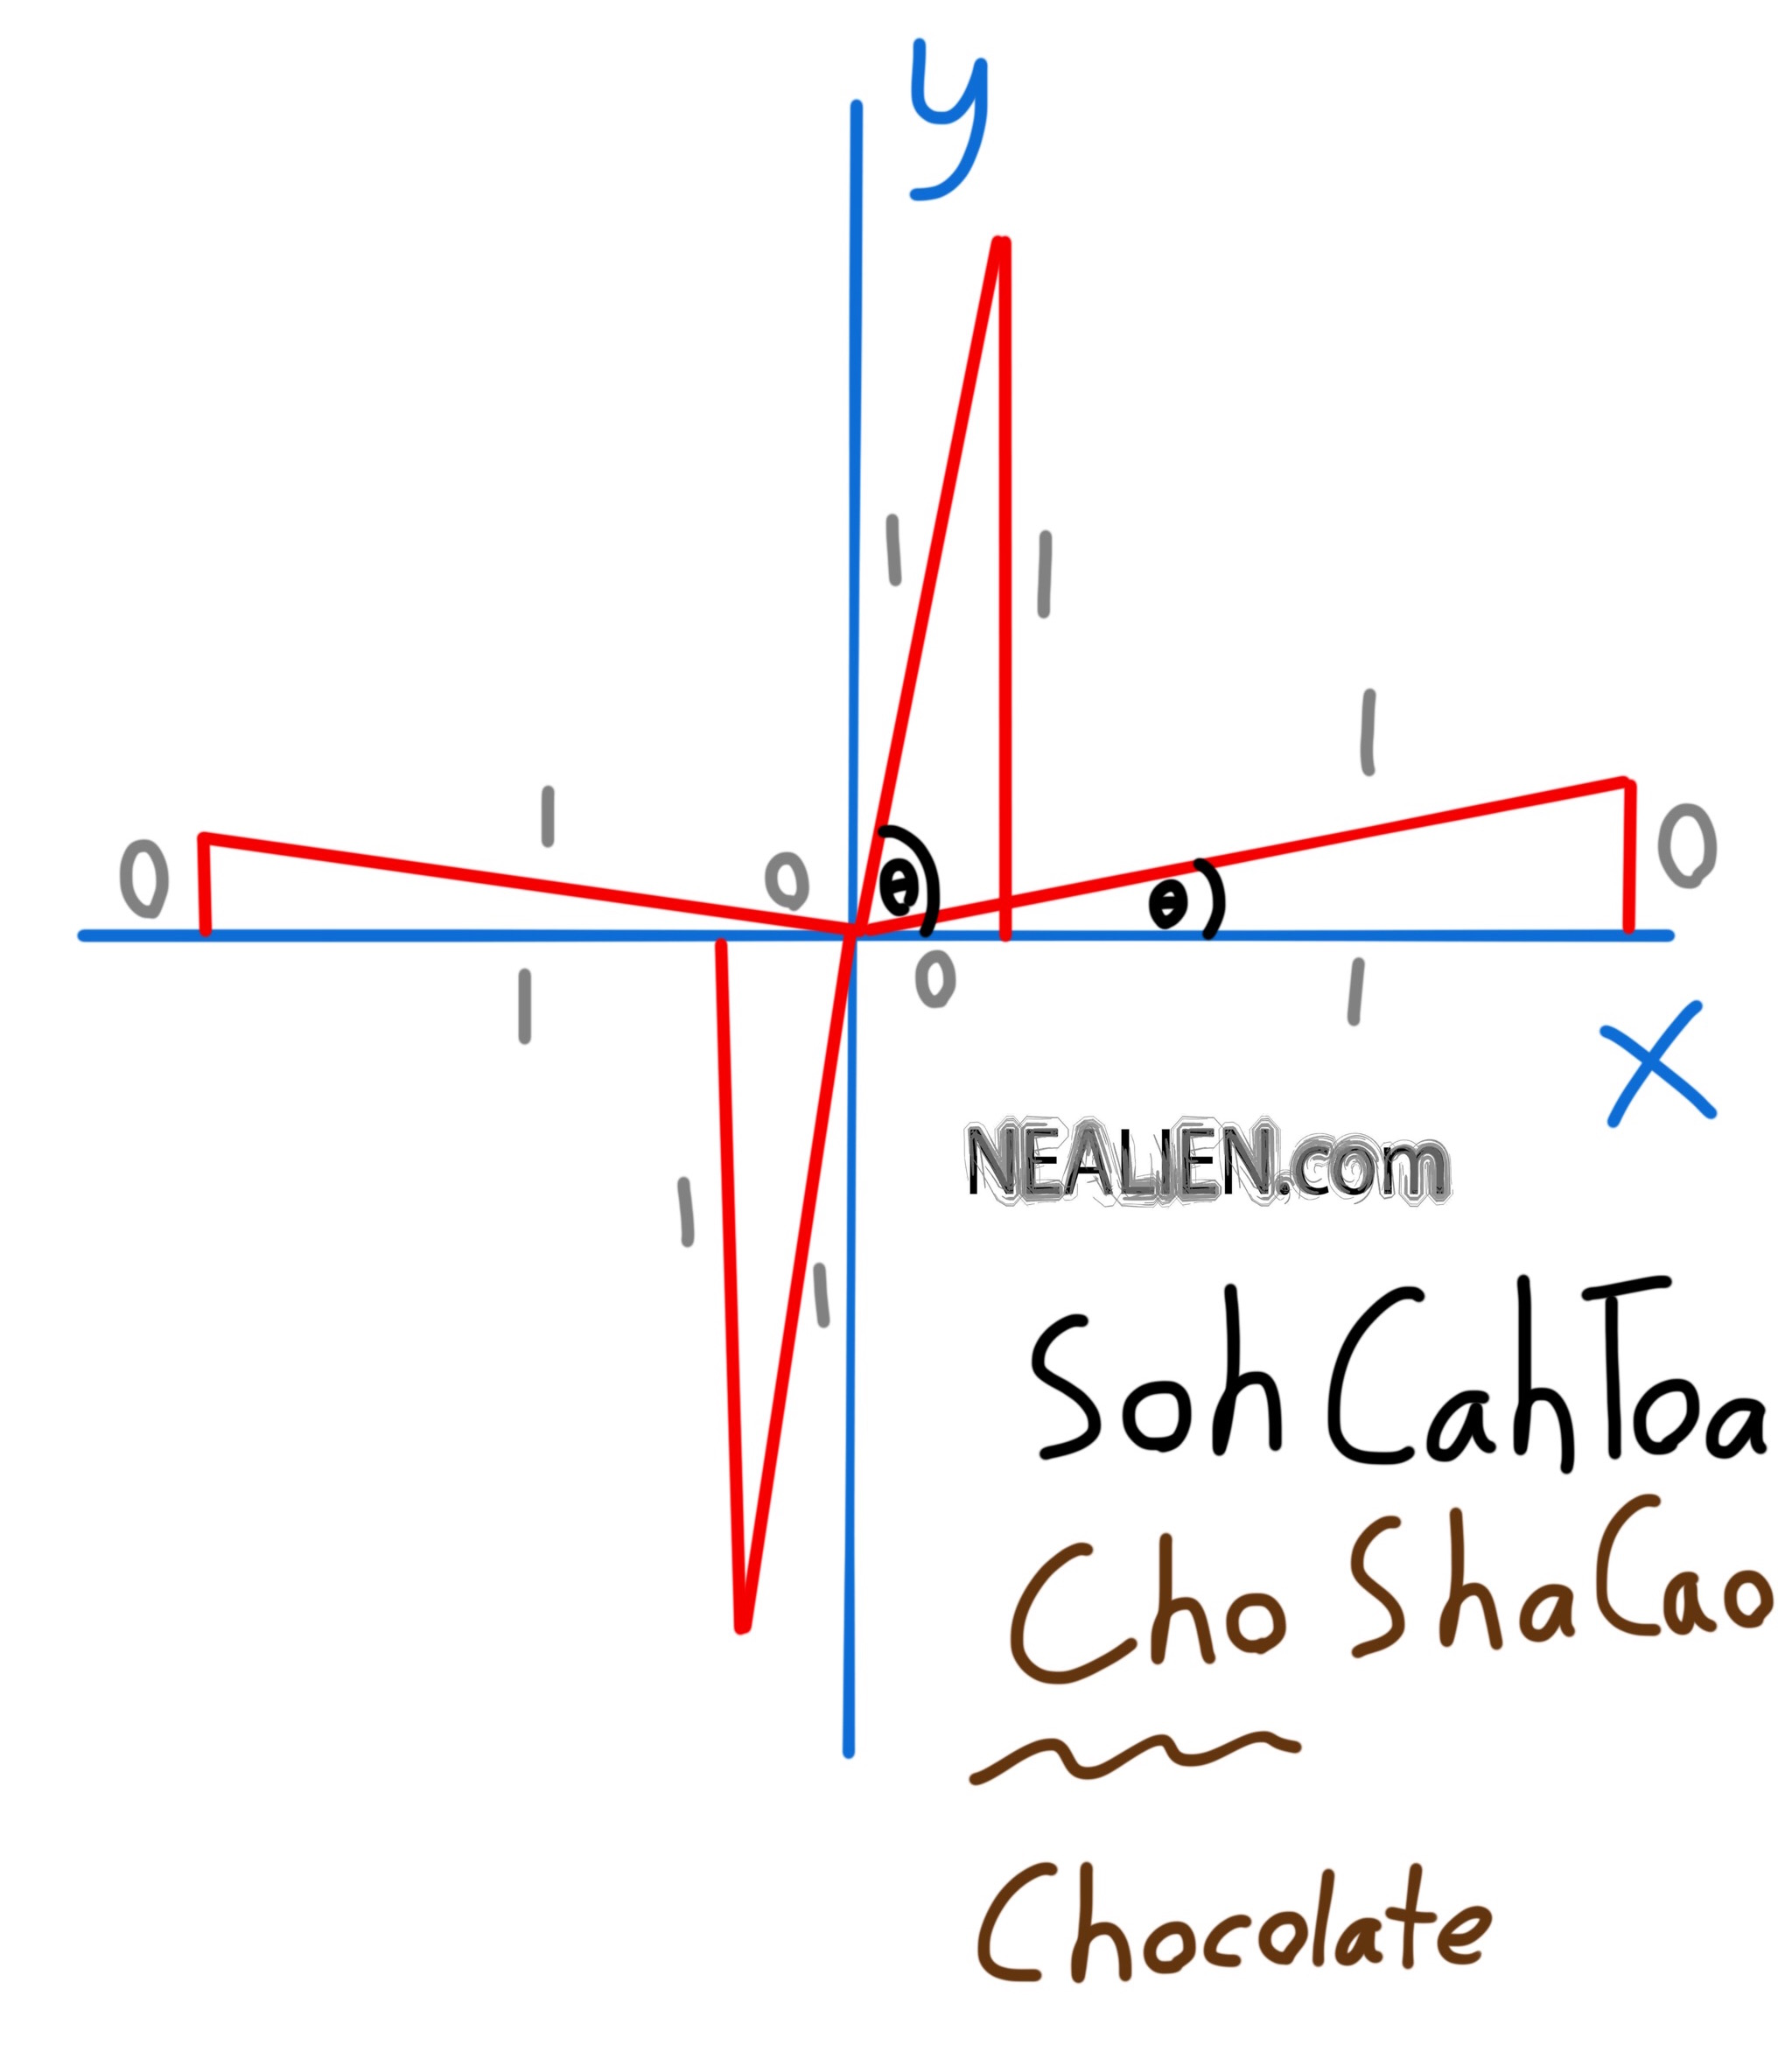 What is the sin of 90 degrees, Tutoring Precalculus